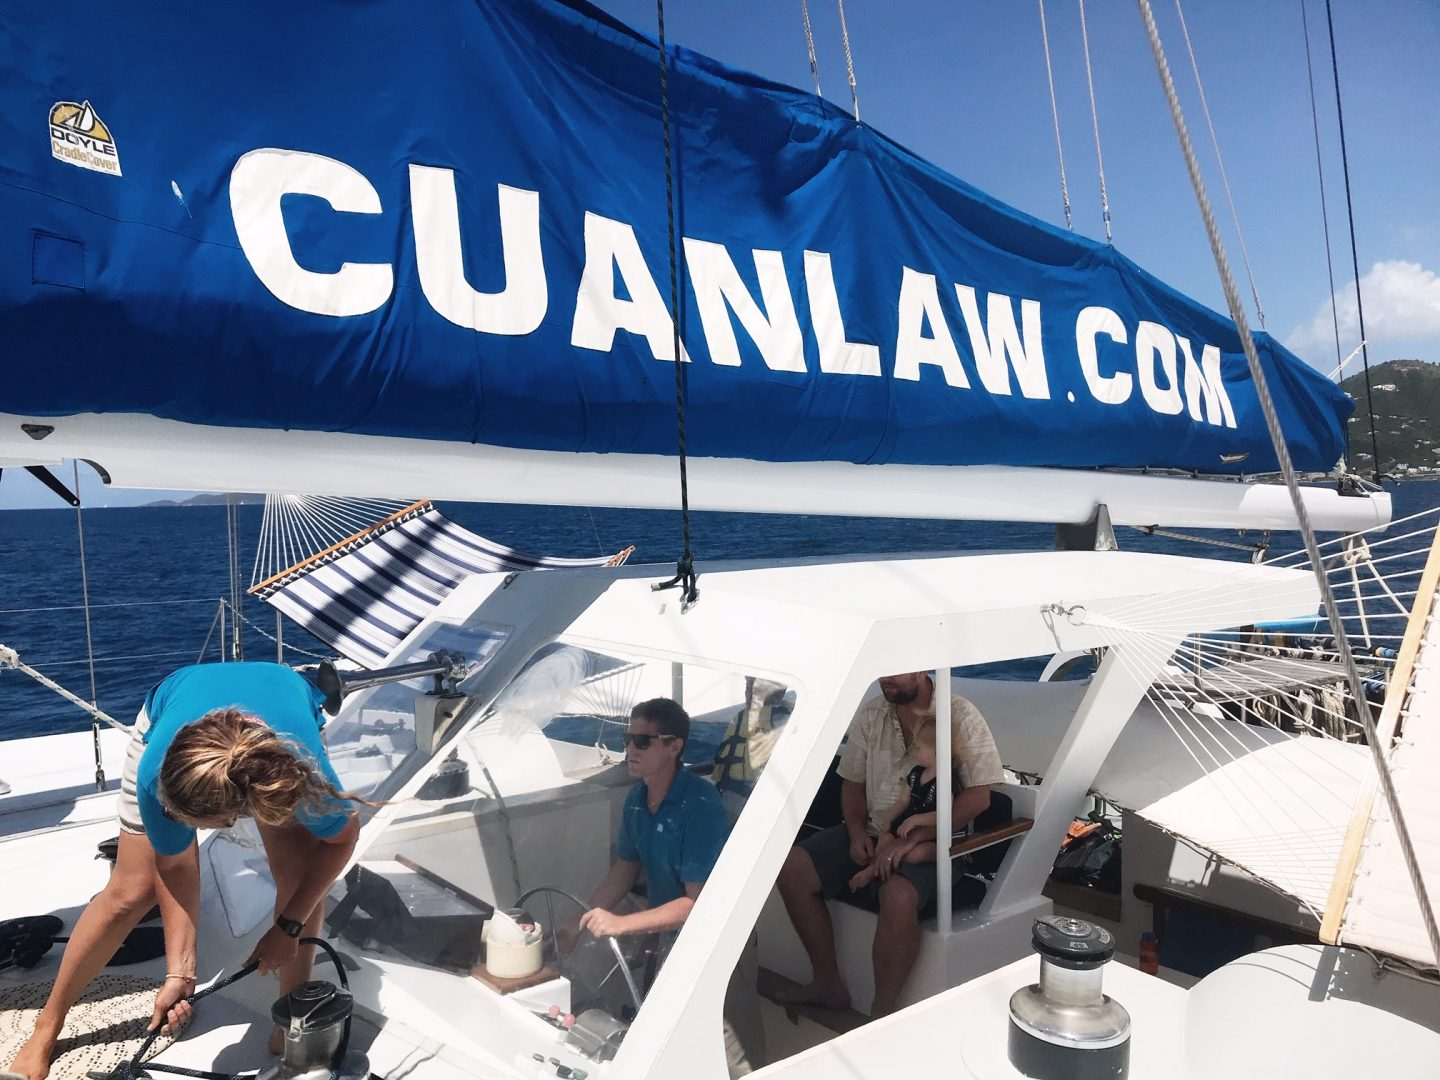 BVI Sailing - Exploring the British Virgin Islands on board Cuan Law trimaran